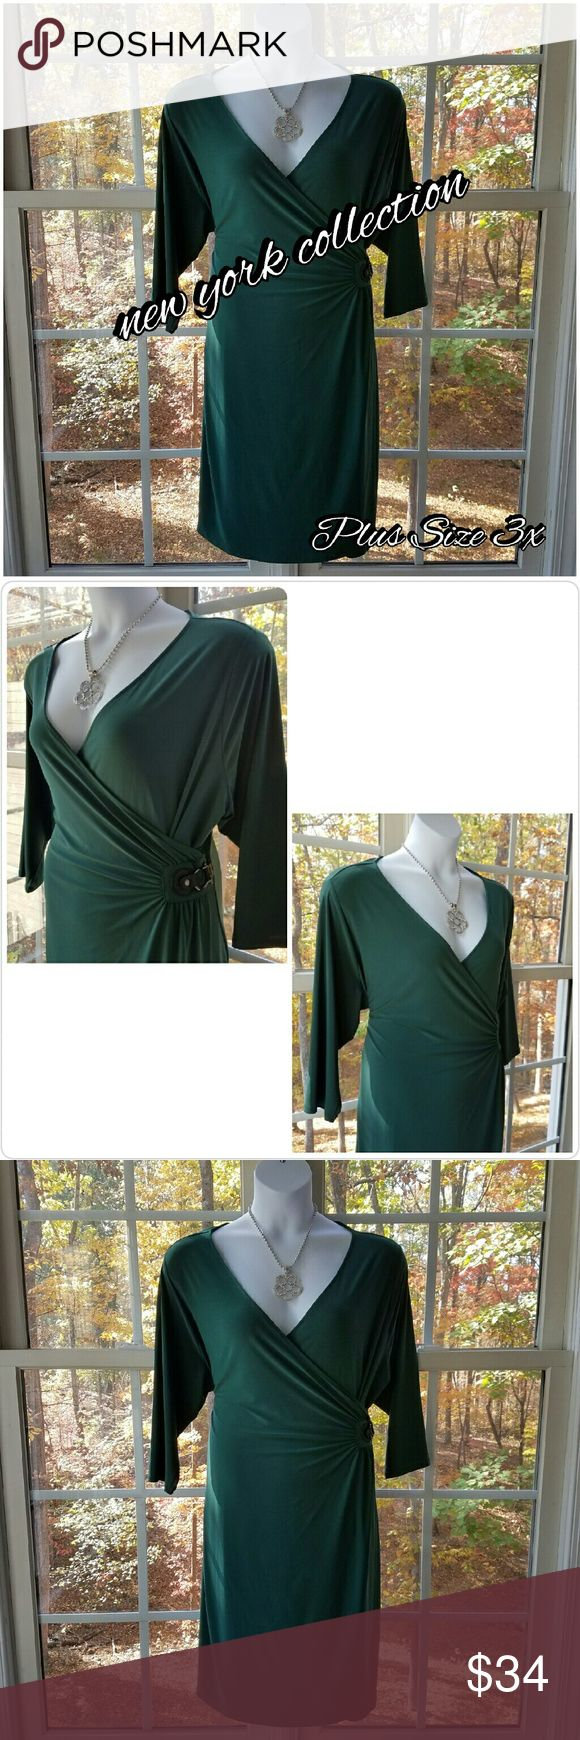 🆕NY Collection Plus Size 3x Glamorous Green Dress I think even Fergie would approve of this glamorous hunter green dress!  Wrap Style 3/4 Length Sleeves Slips on over your head, no closures  Beautiful faux leather and metal buckle 94% Polyester and 6% Spandex  Handwash Cold Measurements to be added   Please let me know if you have any questions. Thank you for looking! Xoxoxoxo NY Collection Dresses